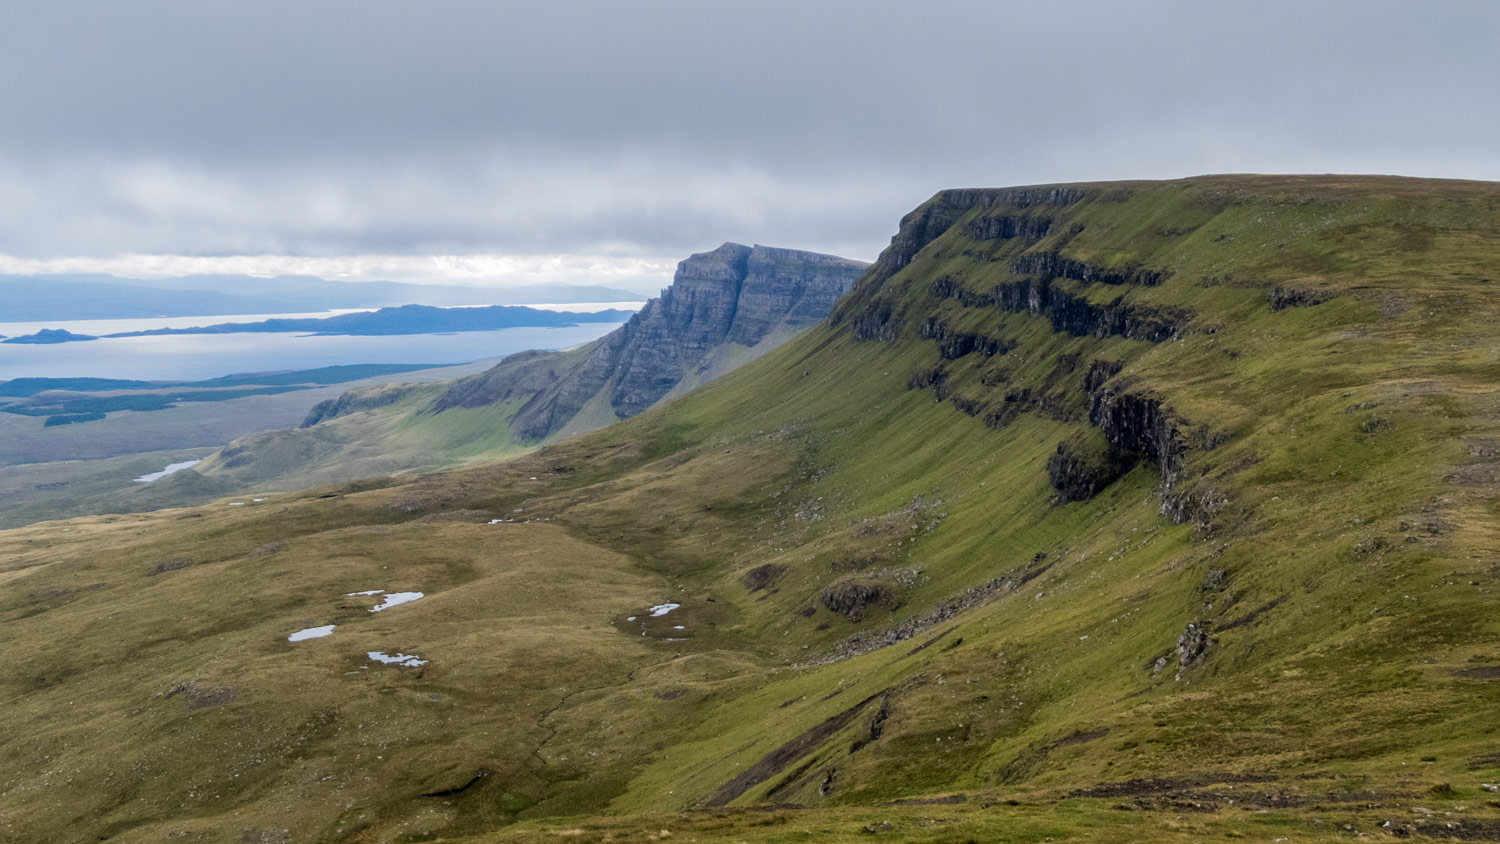 The great cliffs of Sgurr a Mhadaidh Ruadh up ahead.